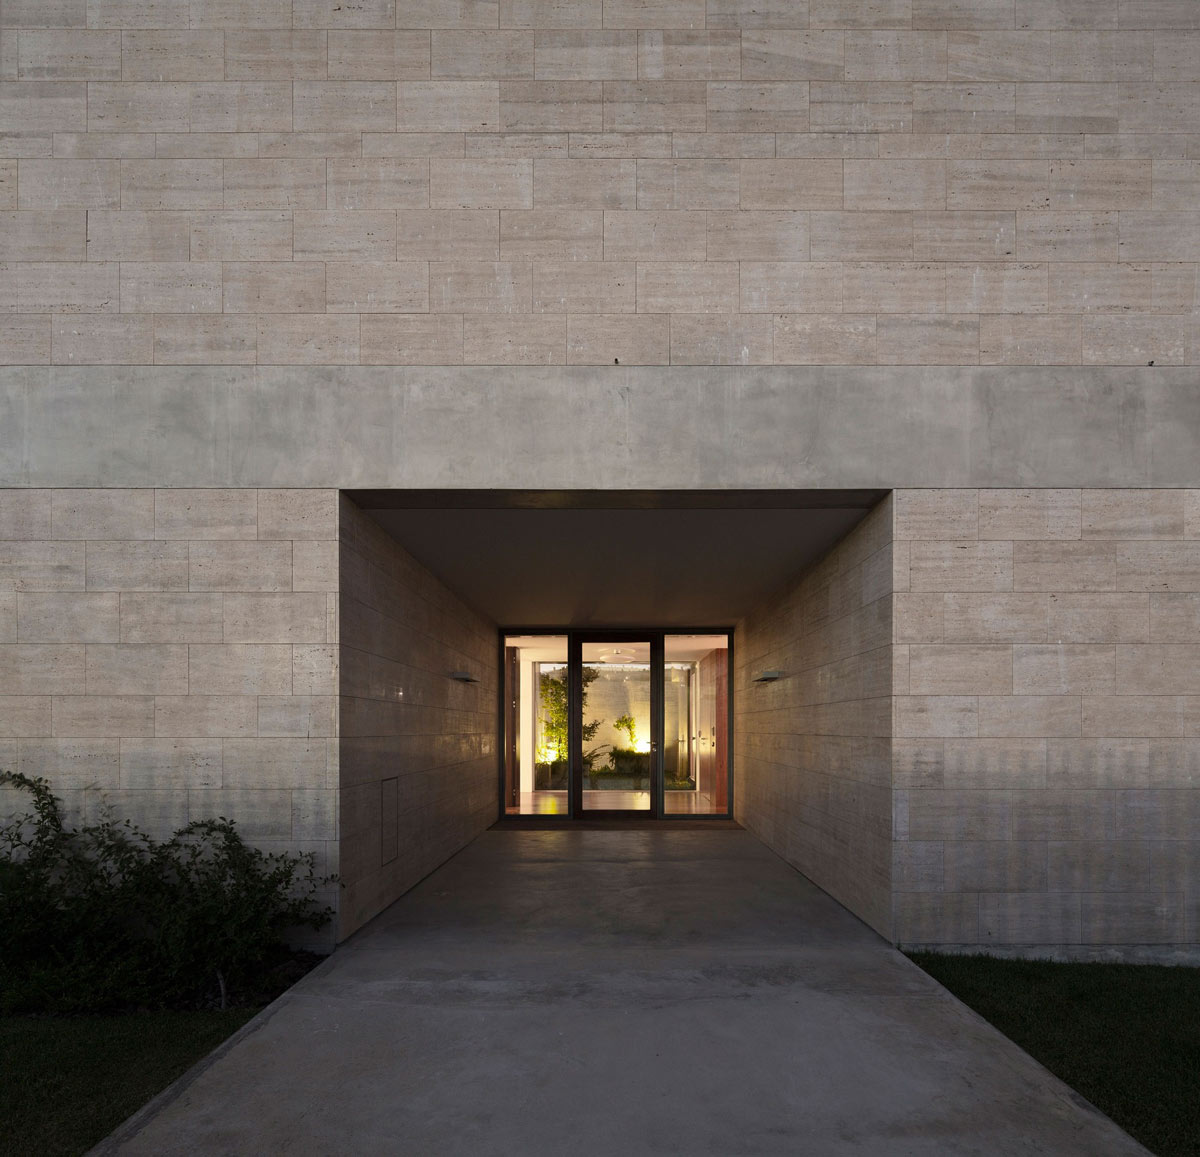 Entrance, Glass Door, Concrete Flooring, C+P House in Lisbon, Portugal by Gonçalo das Neves Nunes